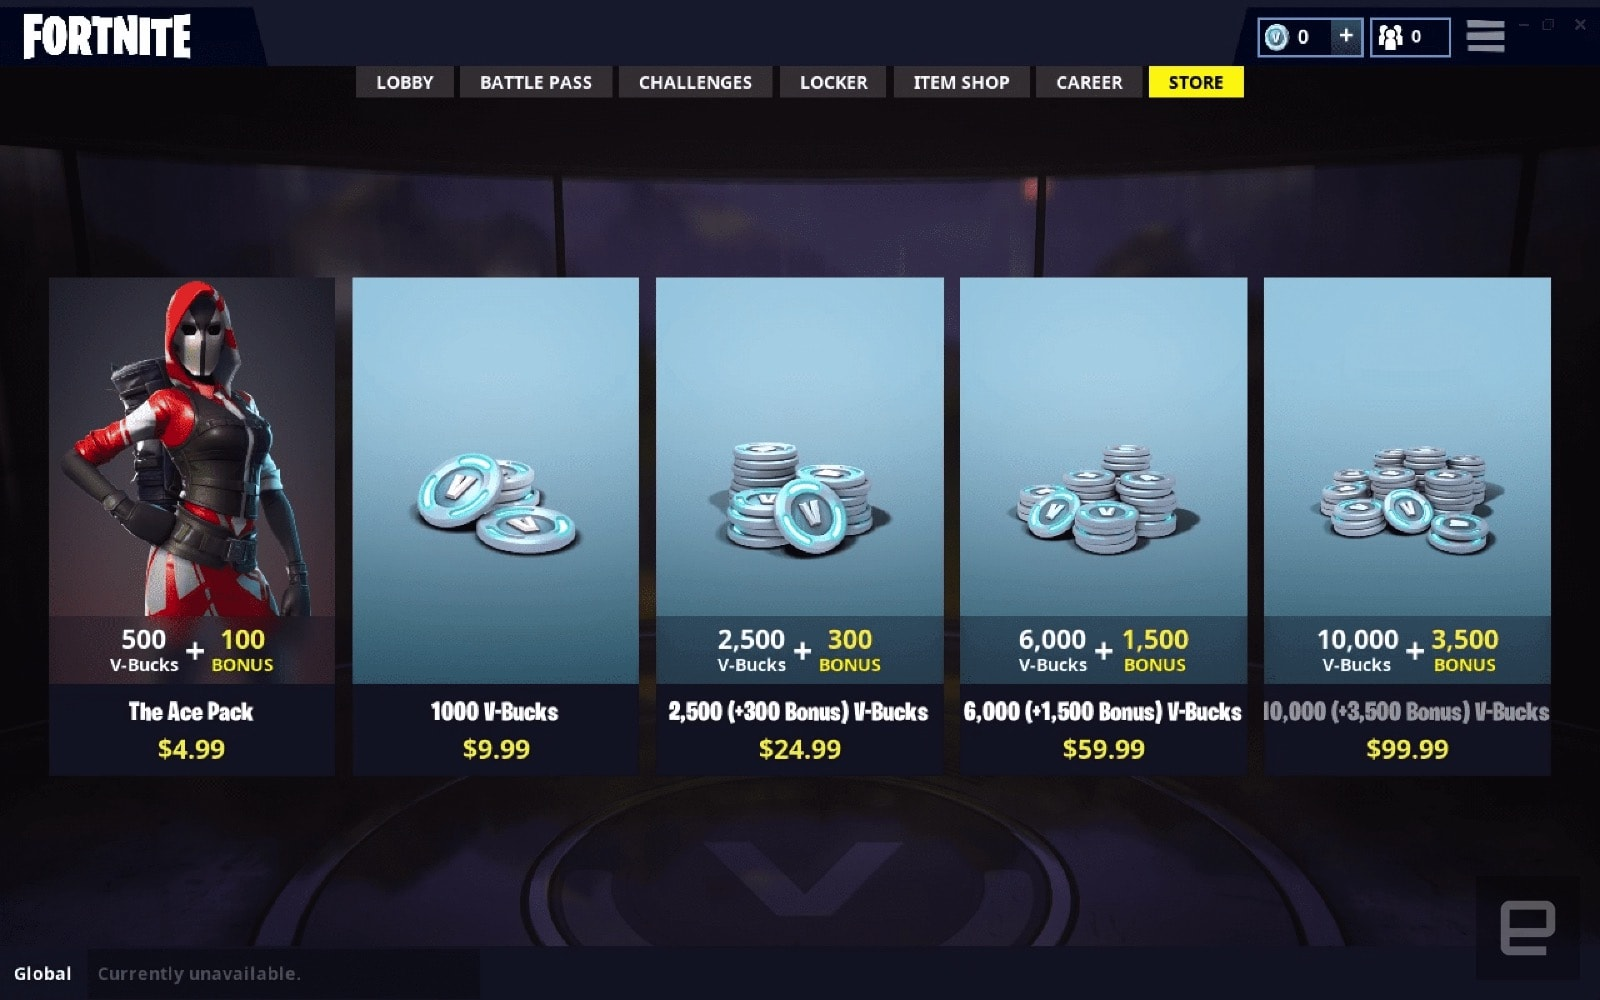 d4244eaa To get some of the most popular Emotes, Fortnite players have to spend  money: they can buy them for anywhere from 200 to 800 V-Bucks, Epic's  in-game ...